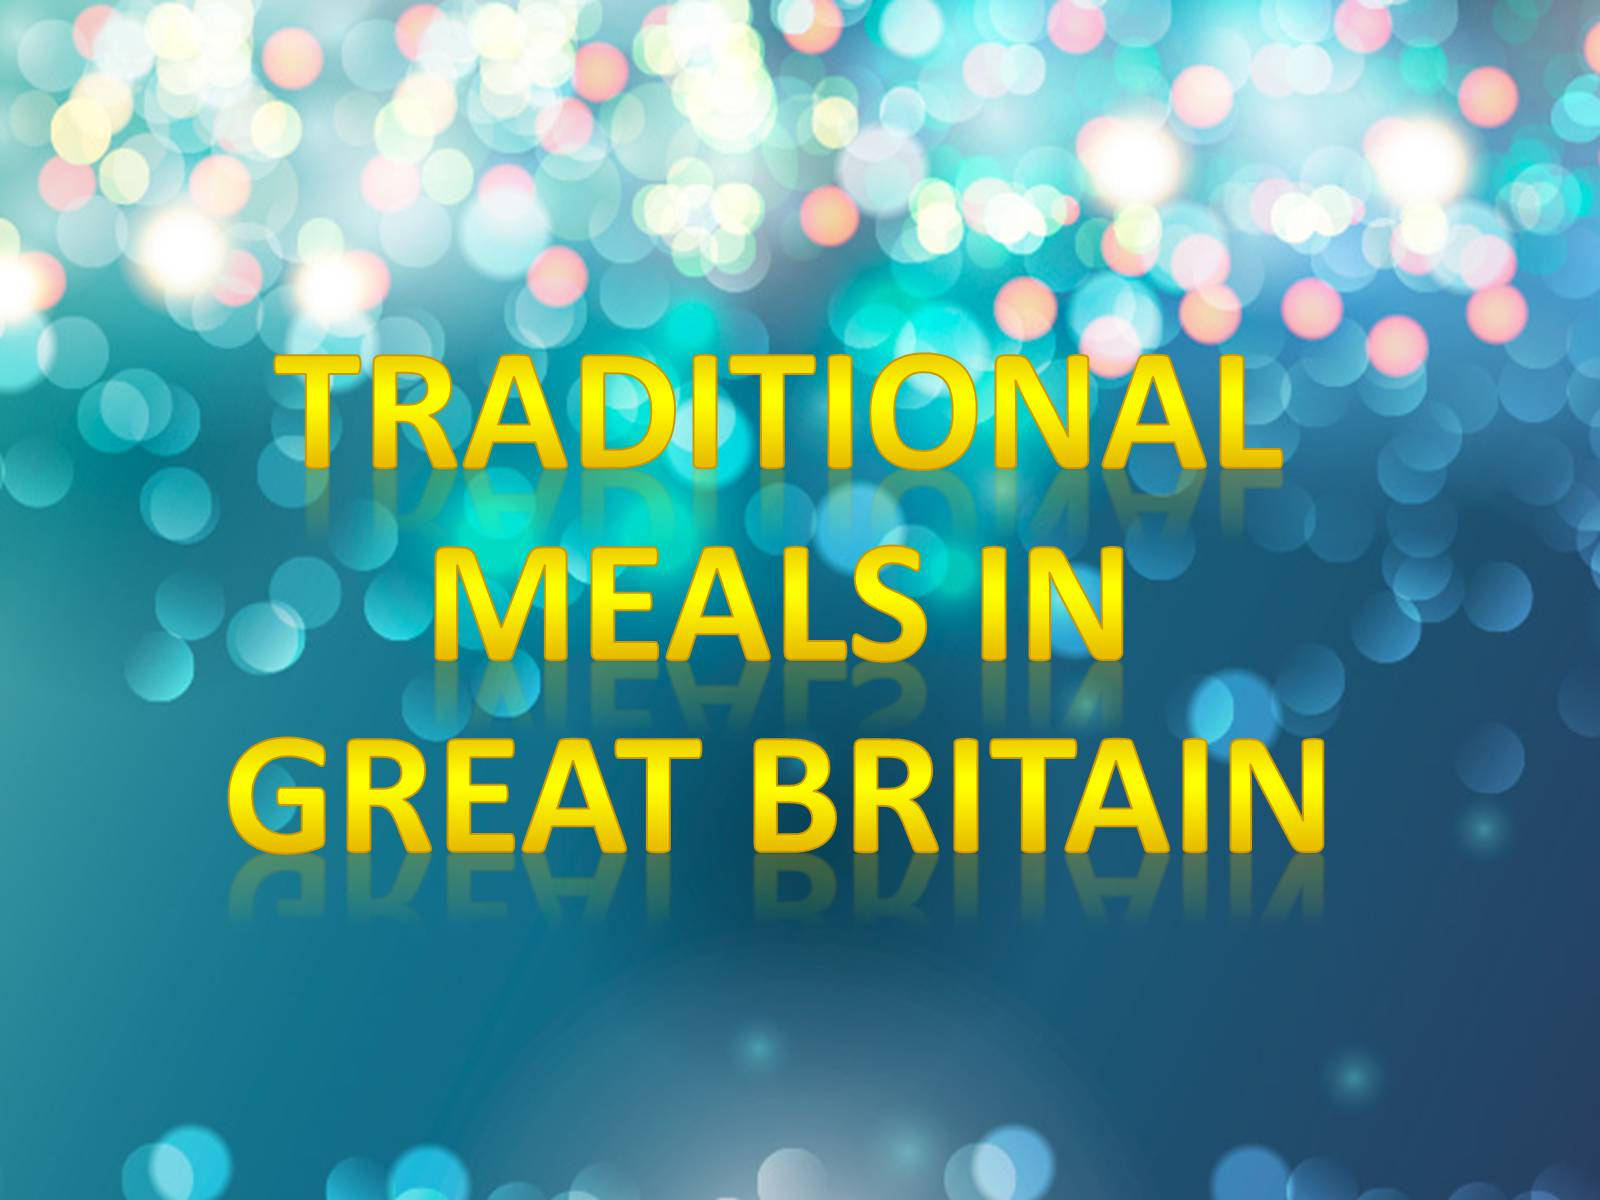 Презентація на тему «Traditional meals in Great Britain»